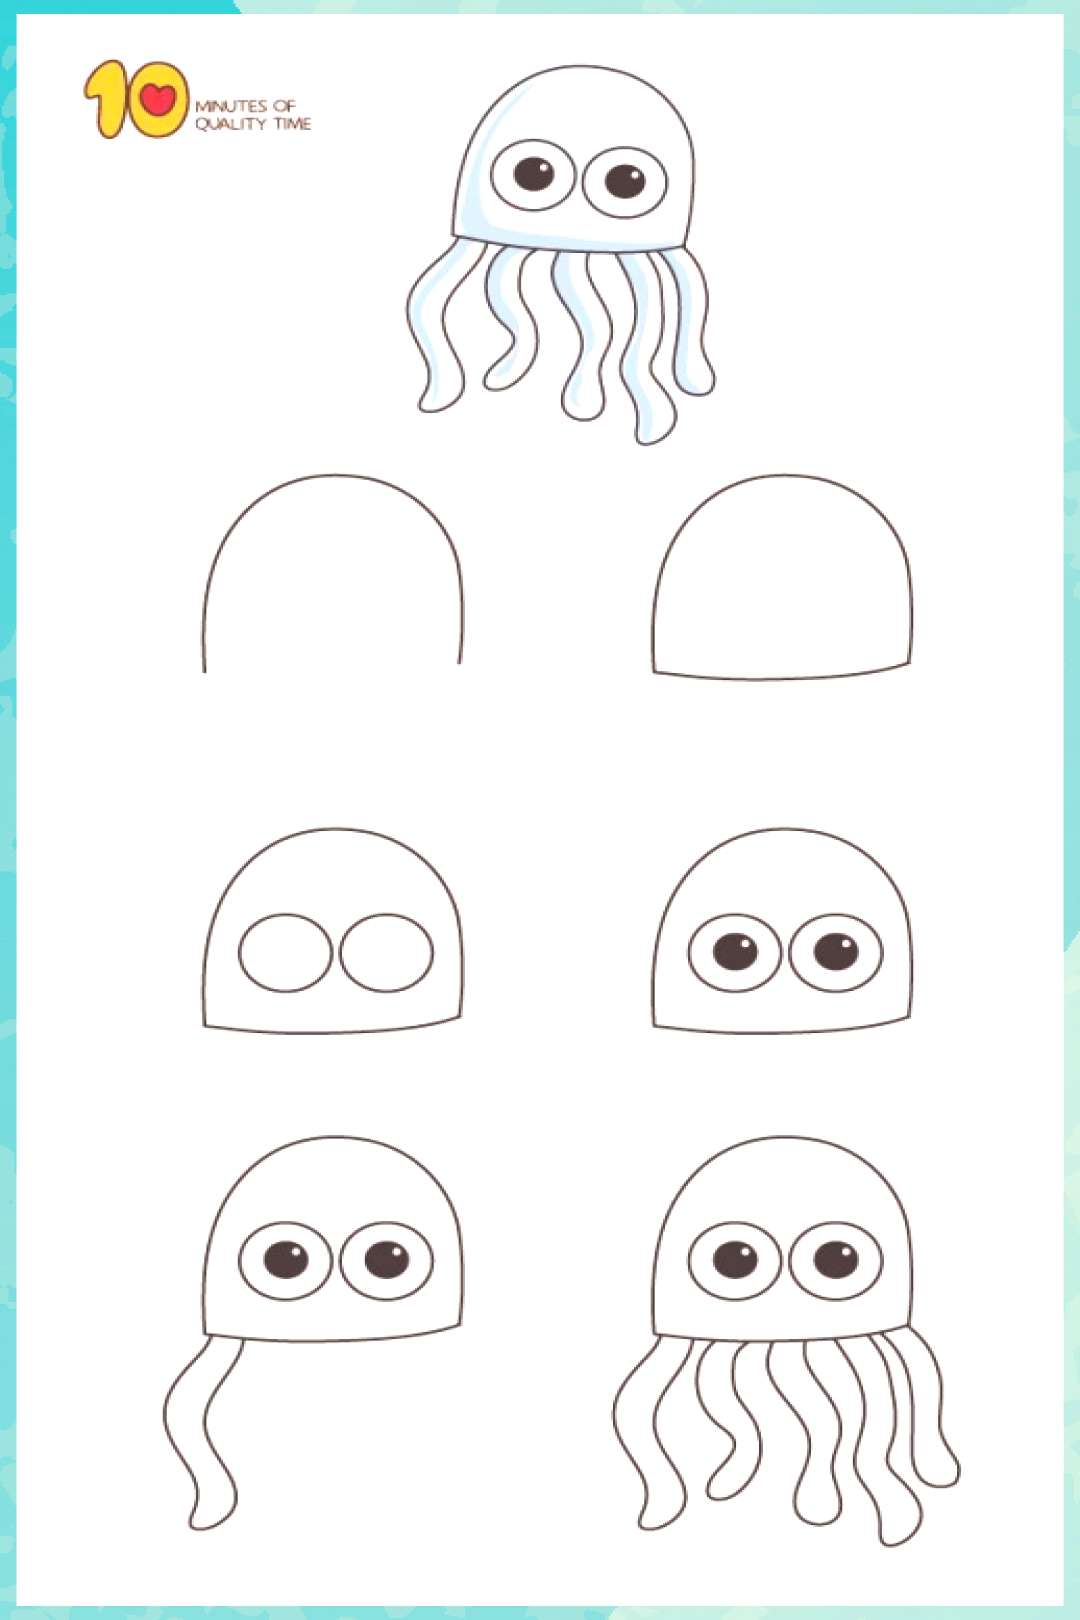 Kunst Zeichnungen - How to Draw a Jellyfish For Kids Step by Step - Aesthetic Costume Craft Decorat